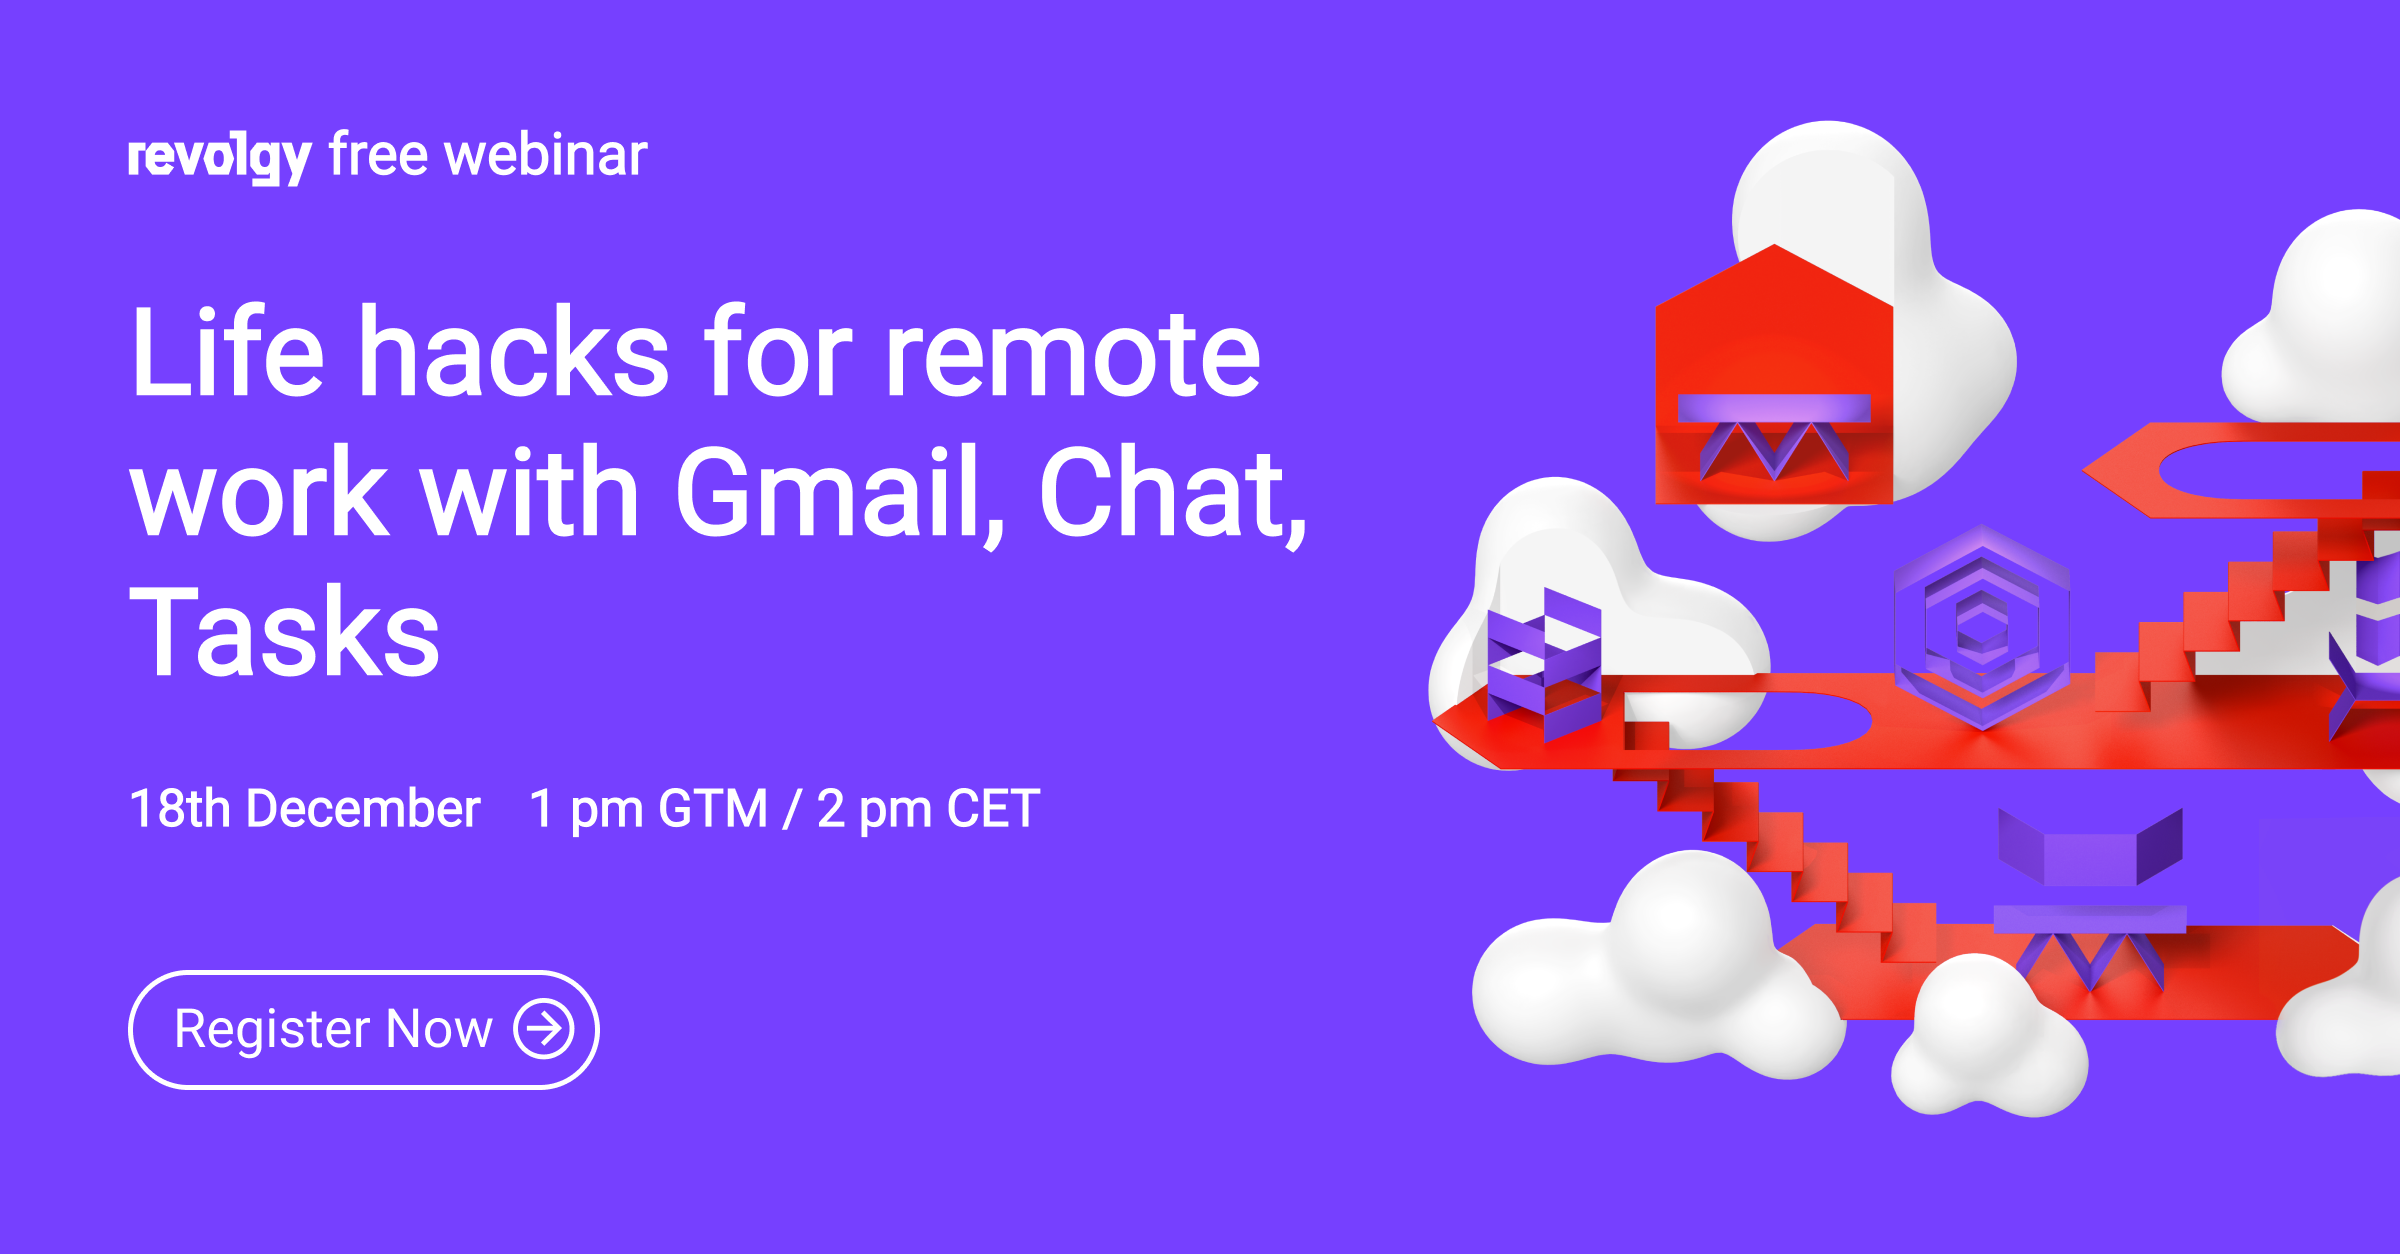 Webinar: Life hacks for working remotely with Gmail, Google Chat and Tasks